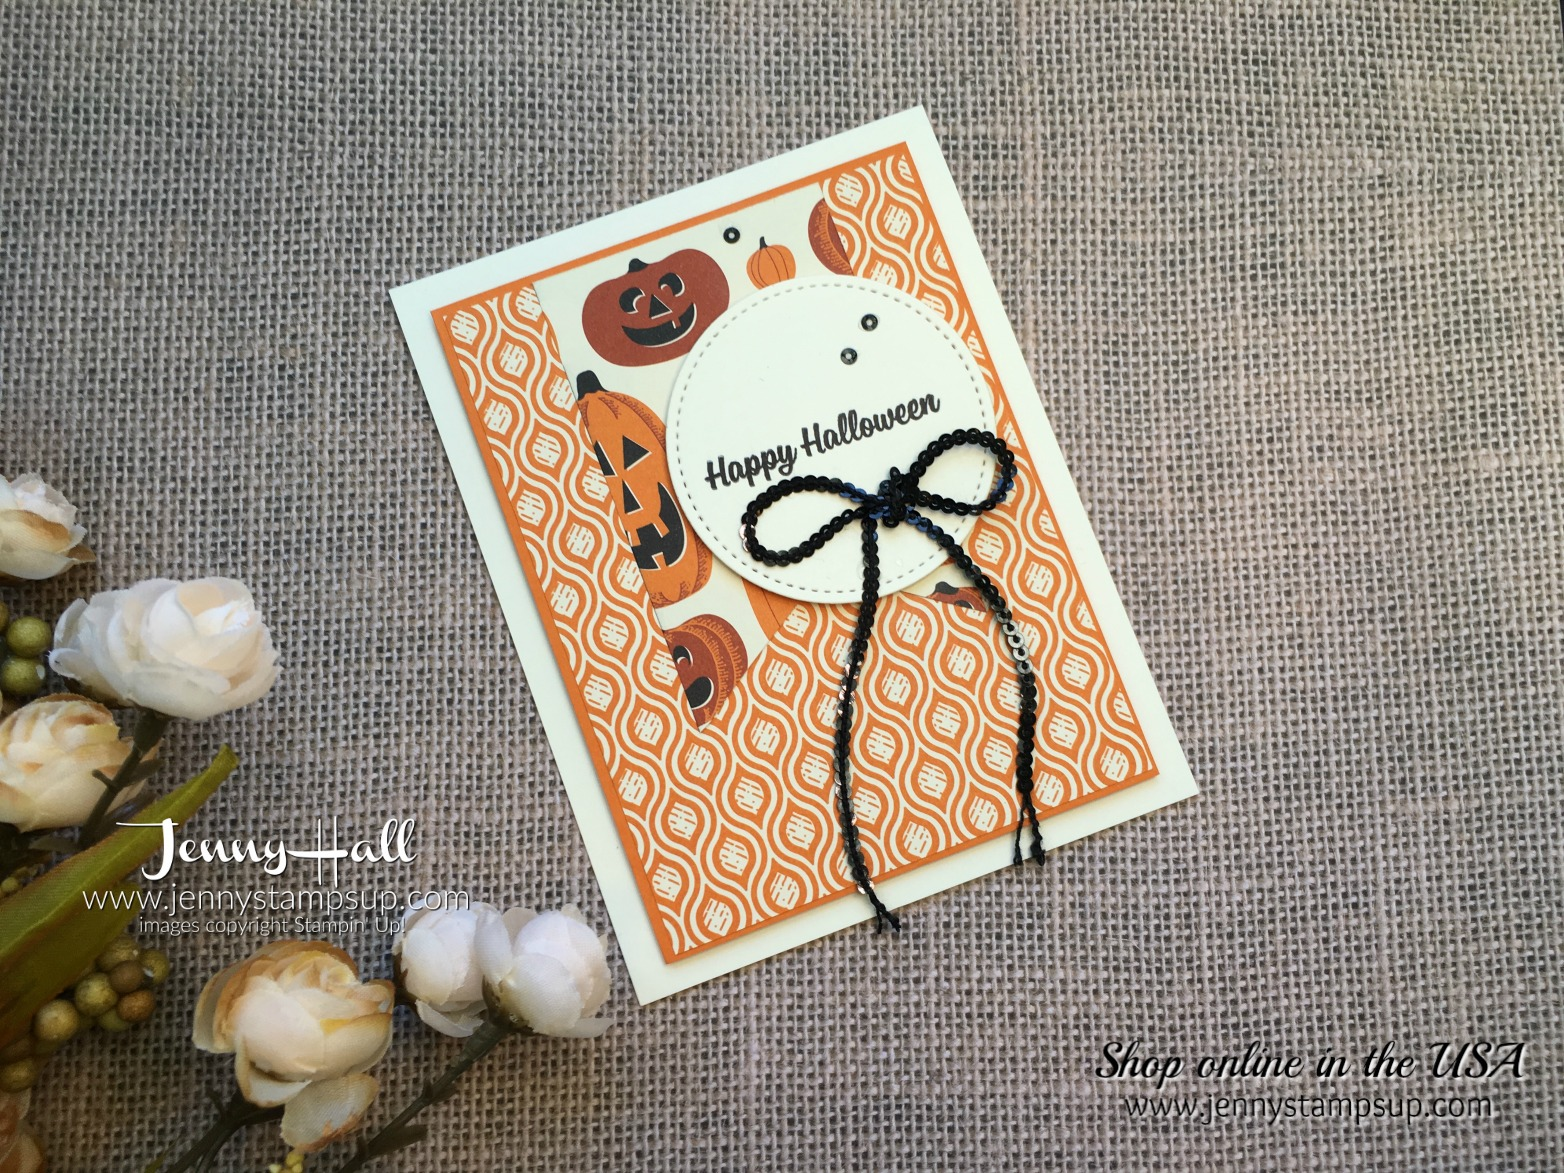 Simple Halloween card with Video for #SIP119 by Jenny Hall at www.jennystampsup.com for cardmaking and more